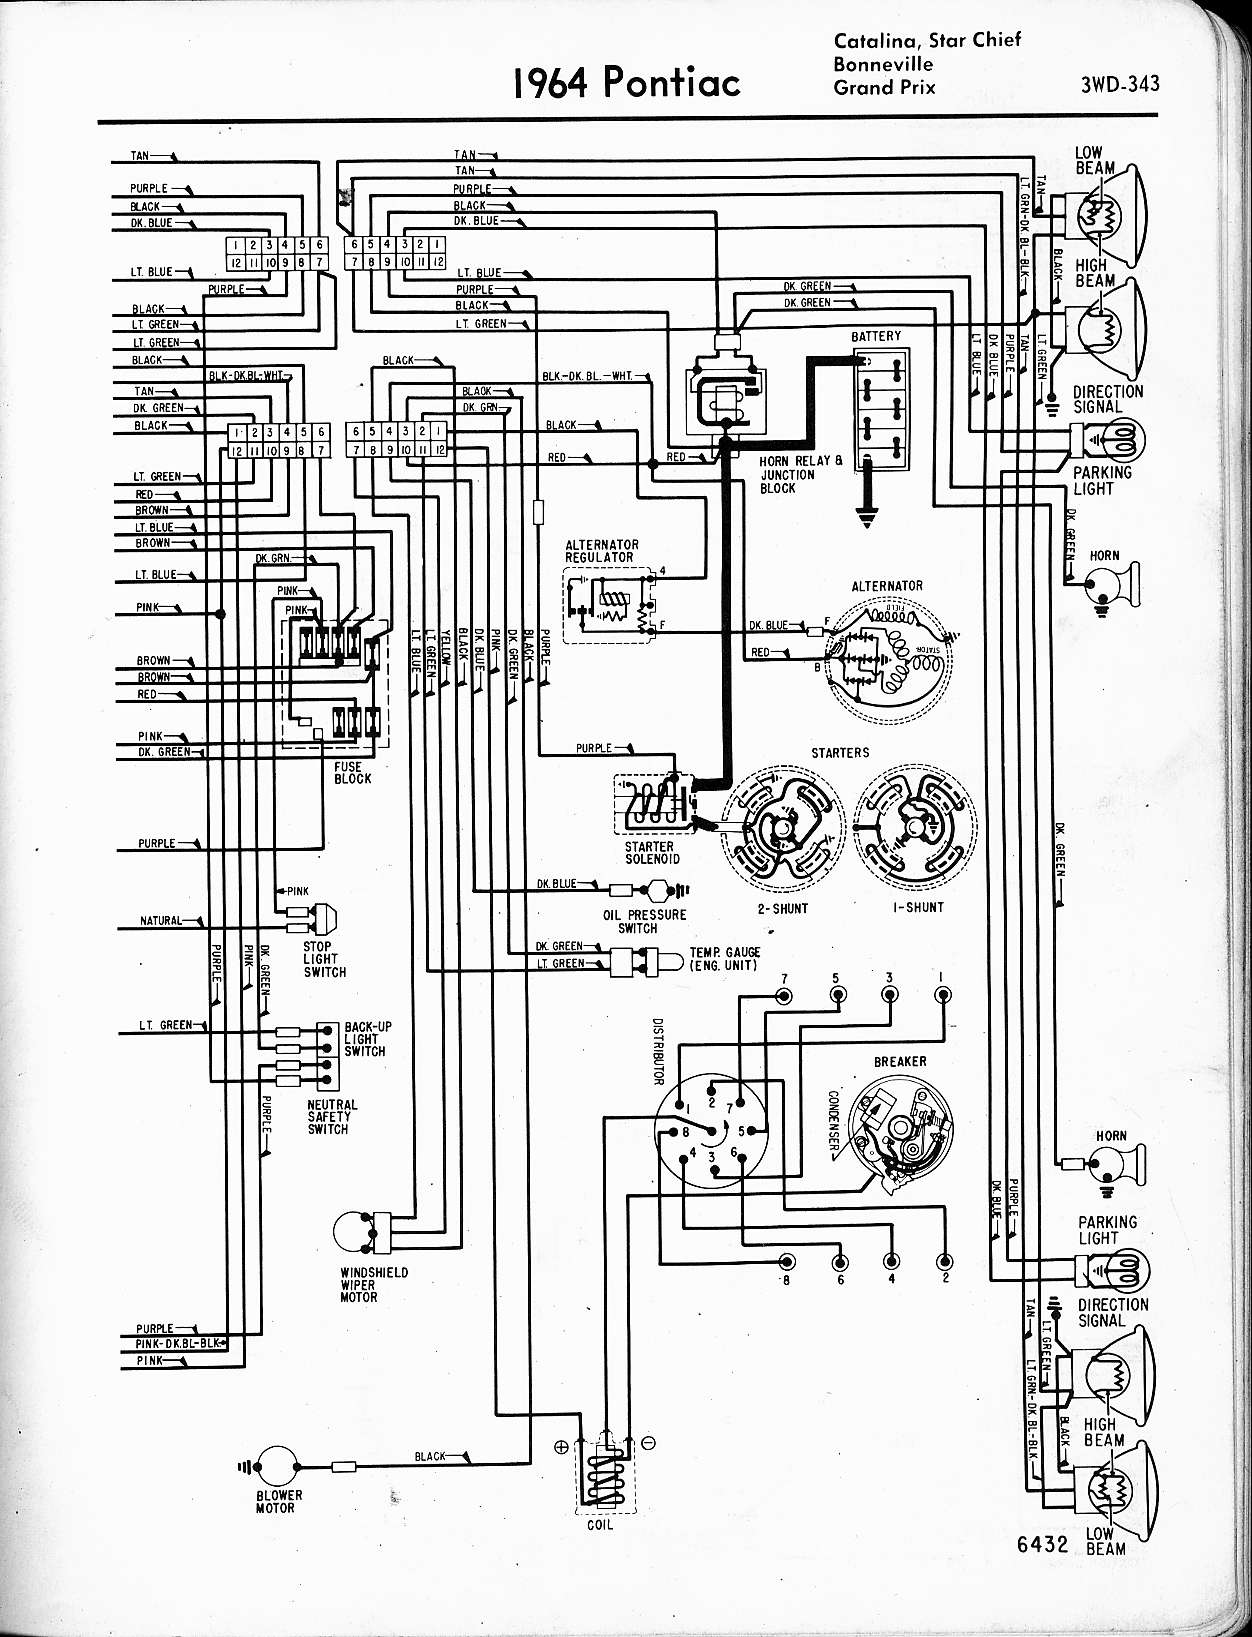 1969 pontiac wiring diagram another blog about wiring diagram u2022 rh ok2  infoservice ru 2000 pontiac